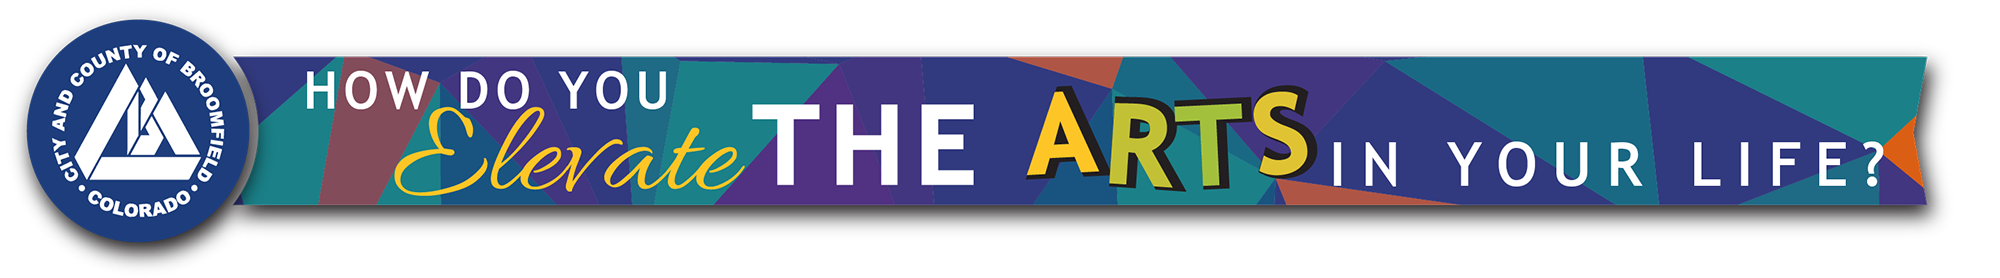 How do you Elevate the Arts in your life Header tag